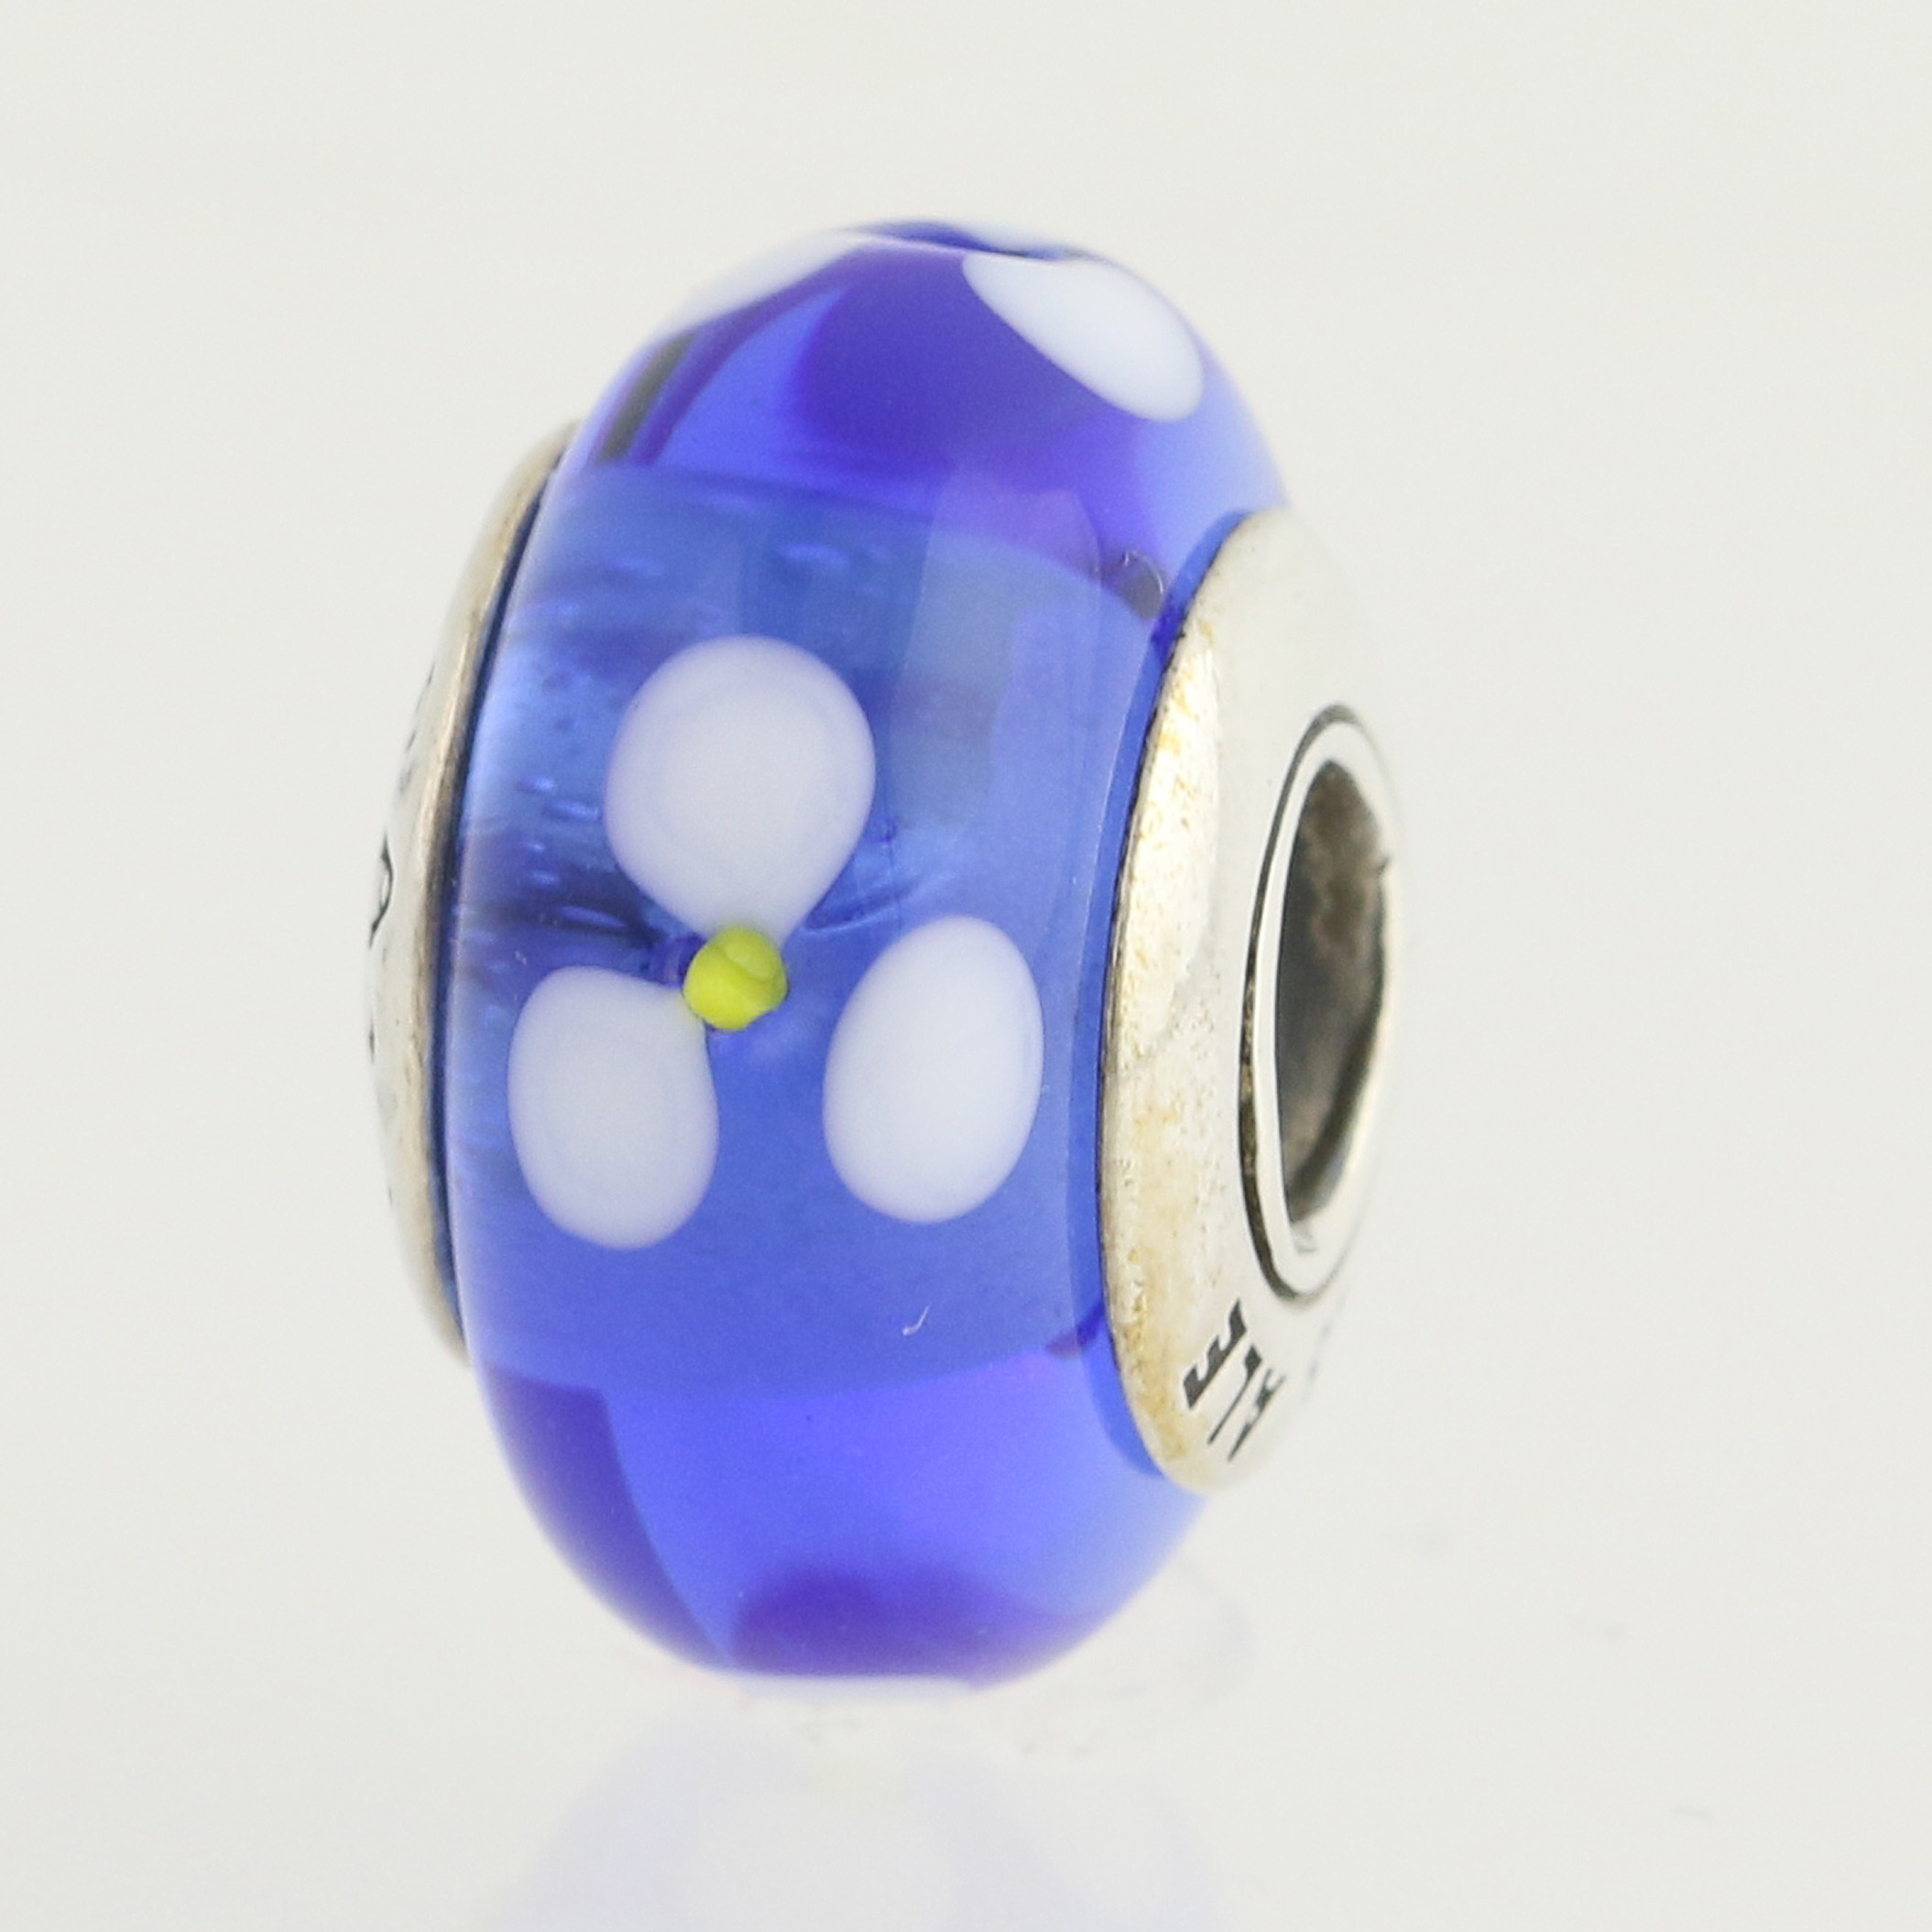 New pandora blue flowers bead sterling silver charm 790609 ebay click thumbnails to enlarge izmirmasajfo